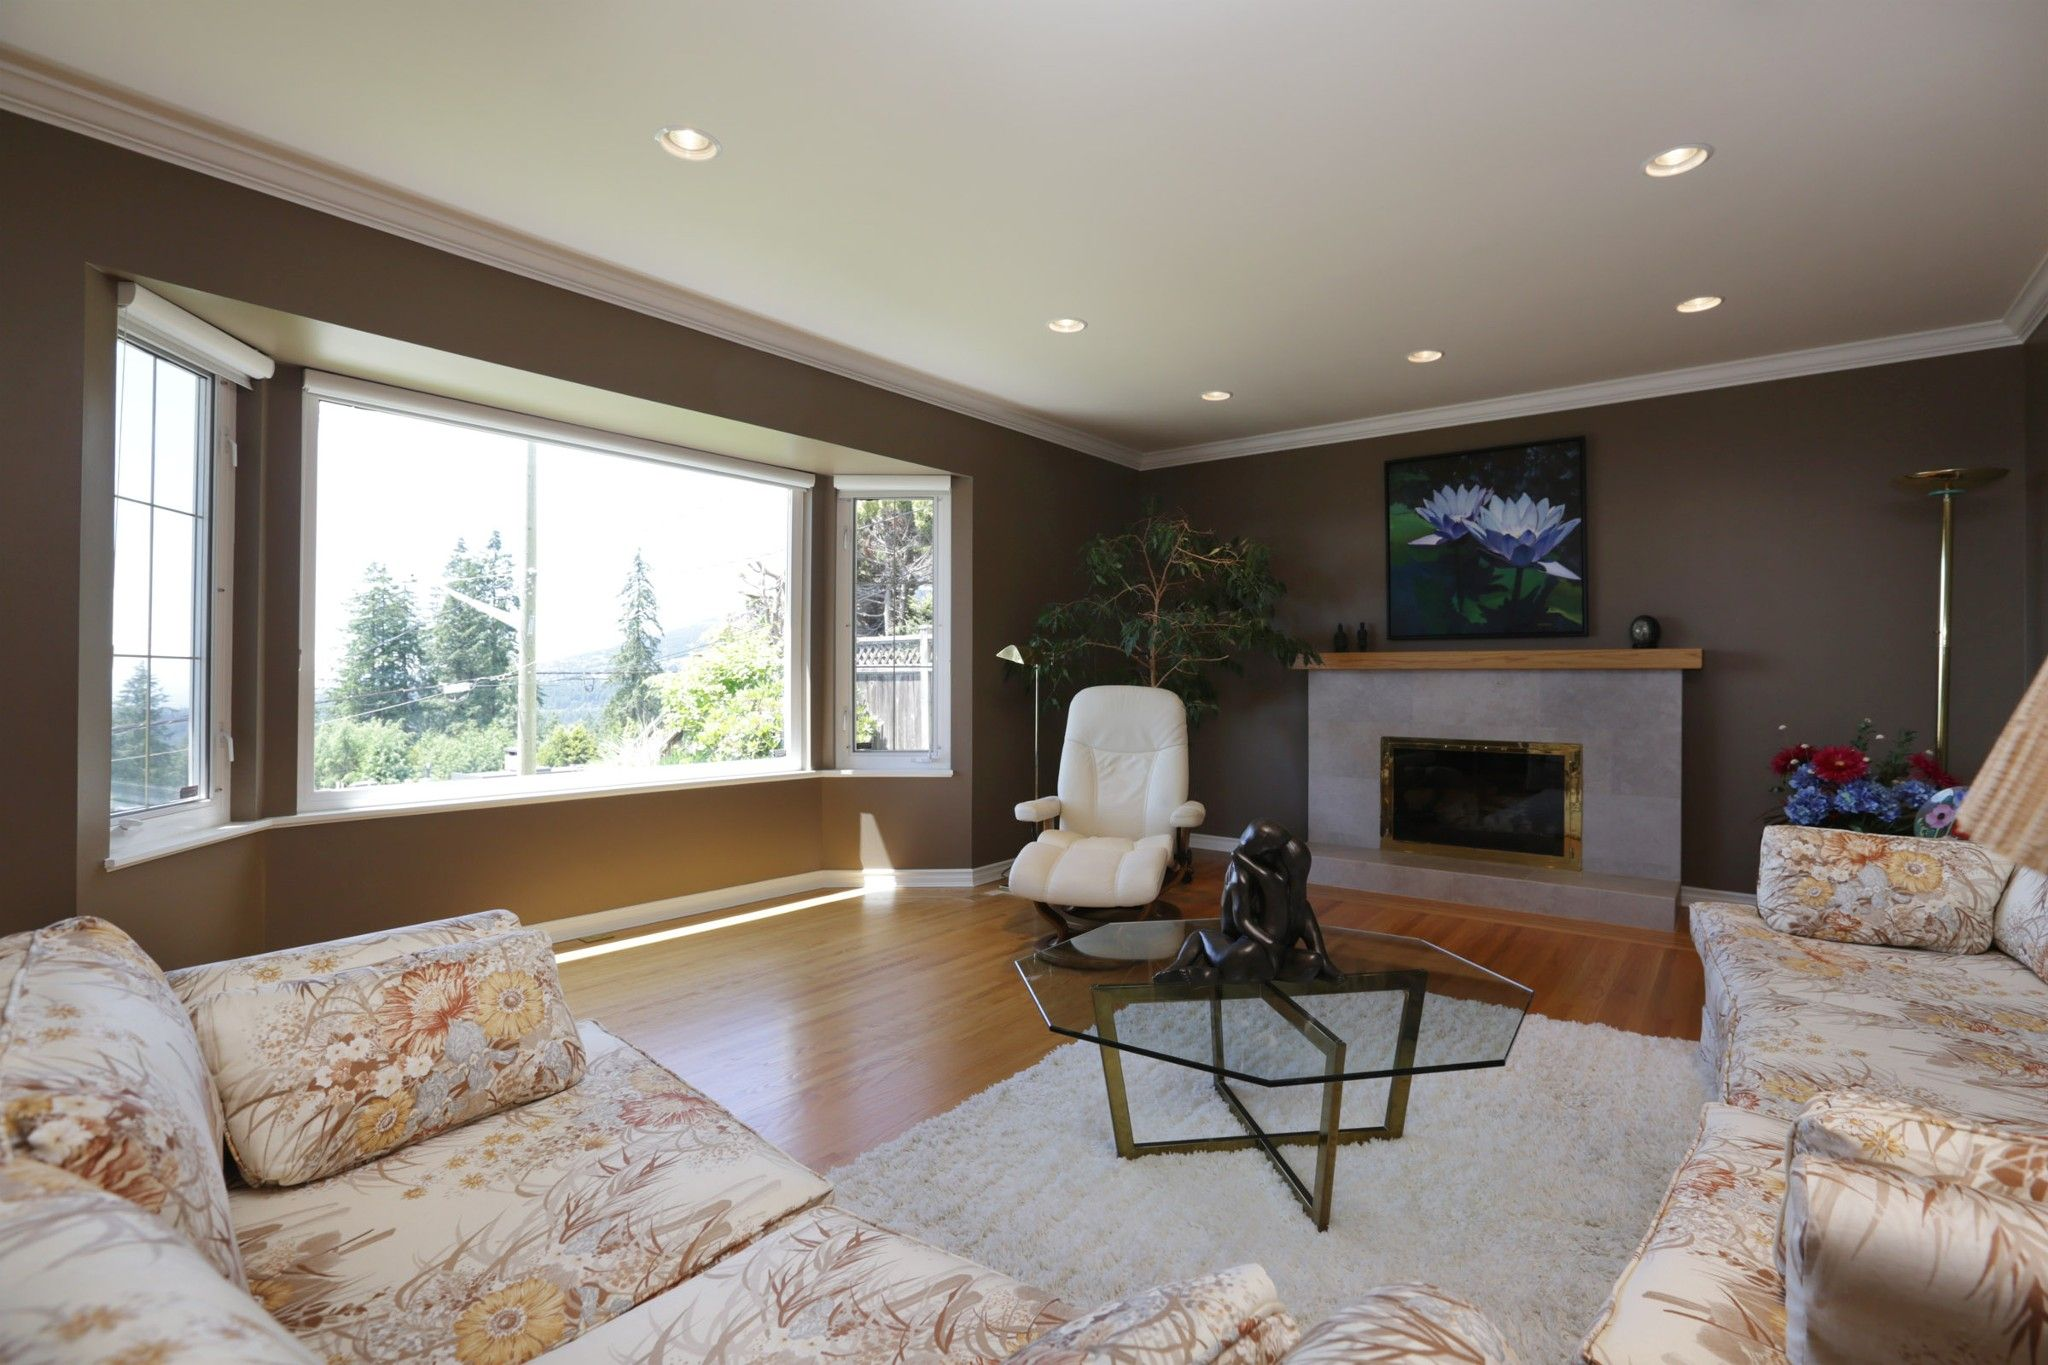 Photo 2: Photos: 372 VENTURA Crescent in North Vancouver: Upper Delbrook House for sale : MLS®# R2284717